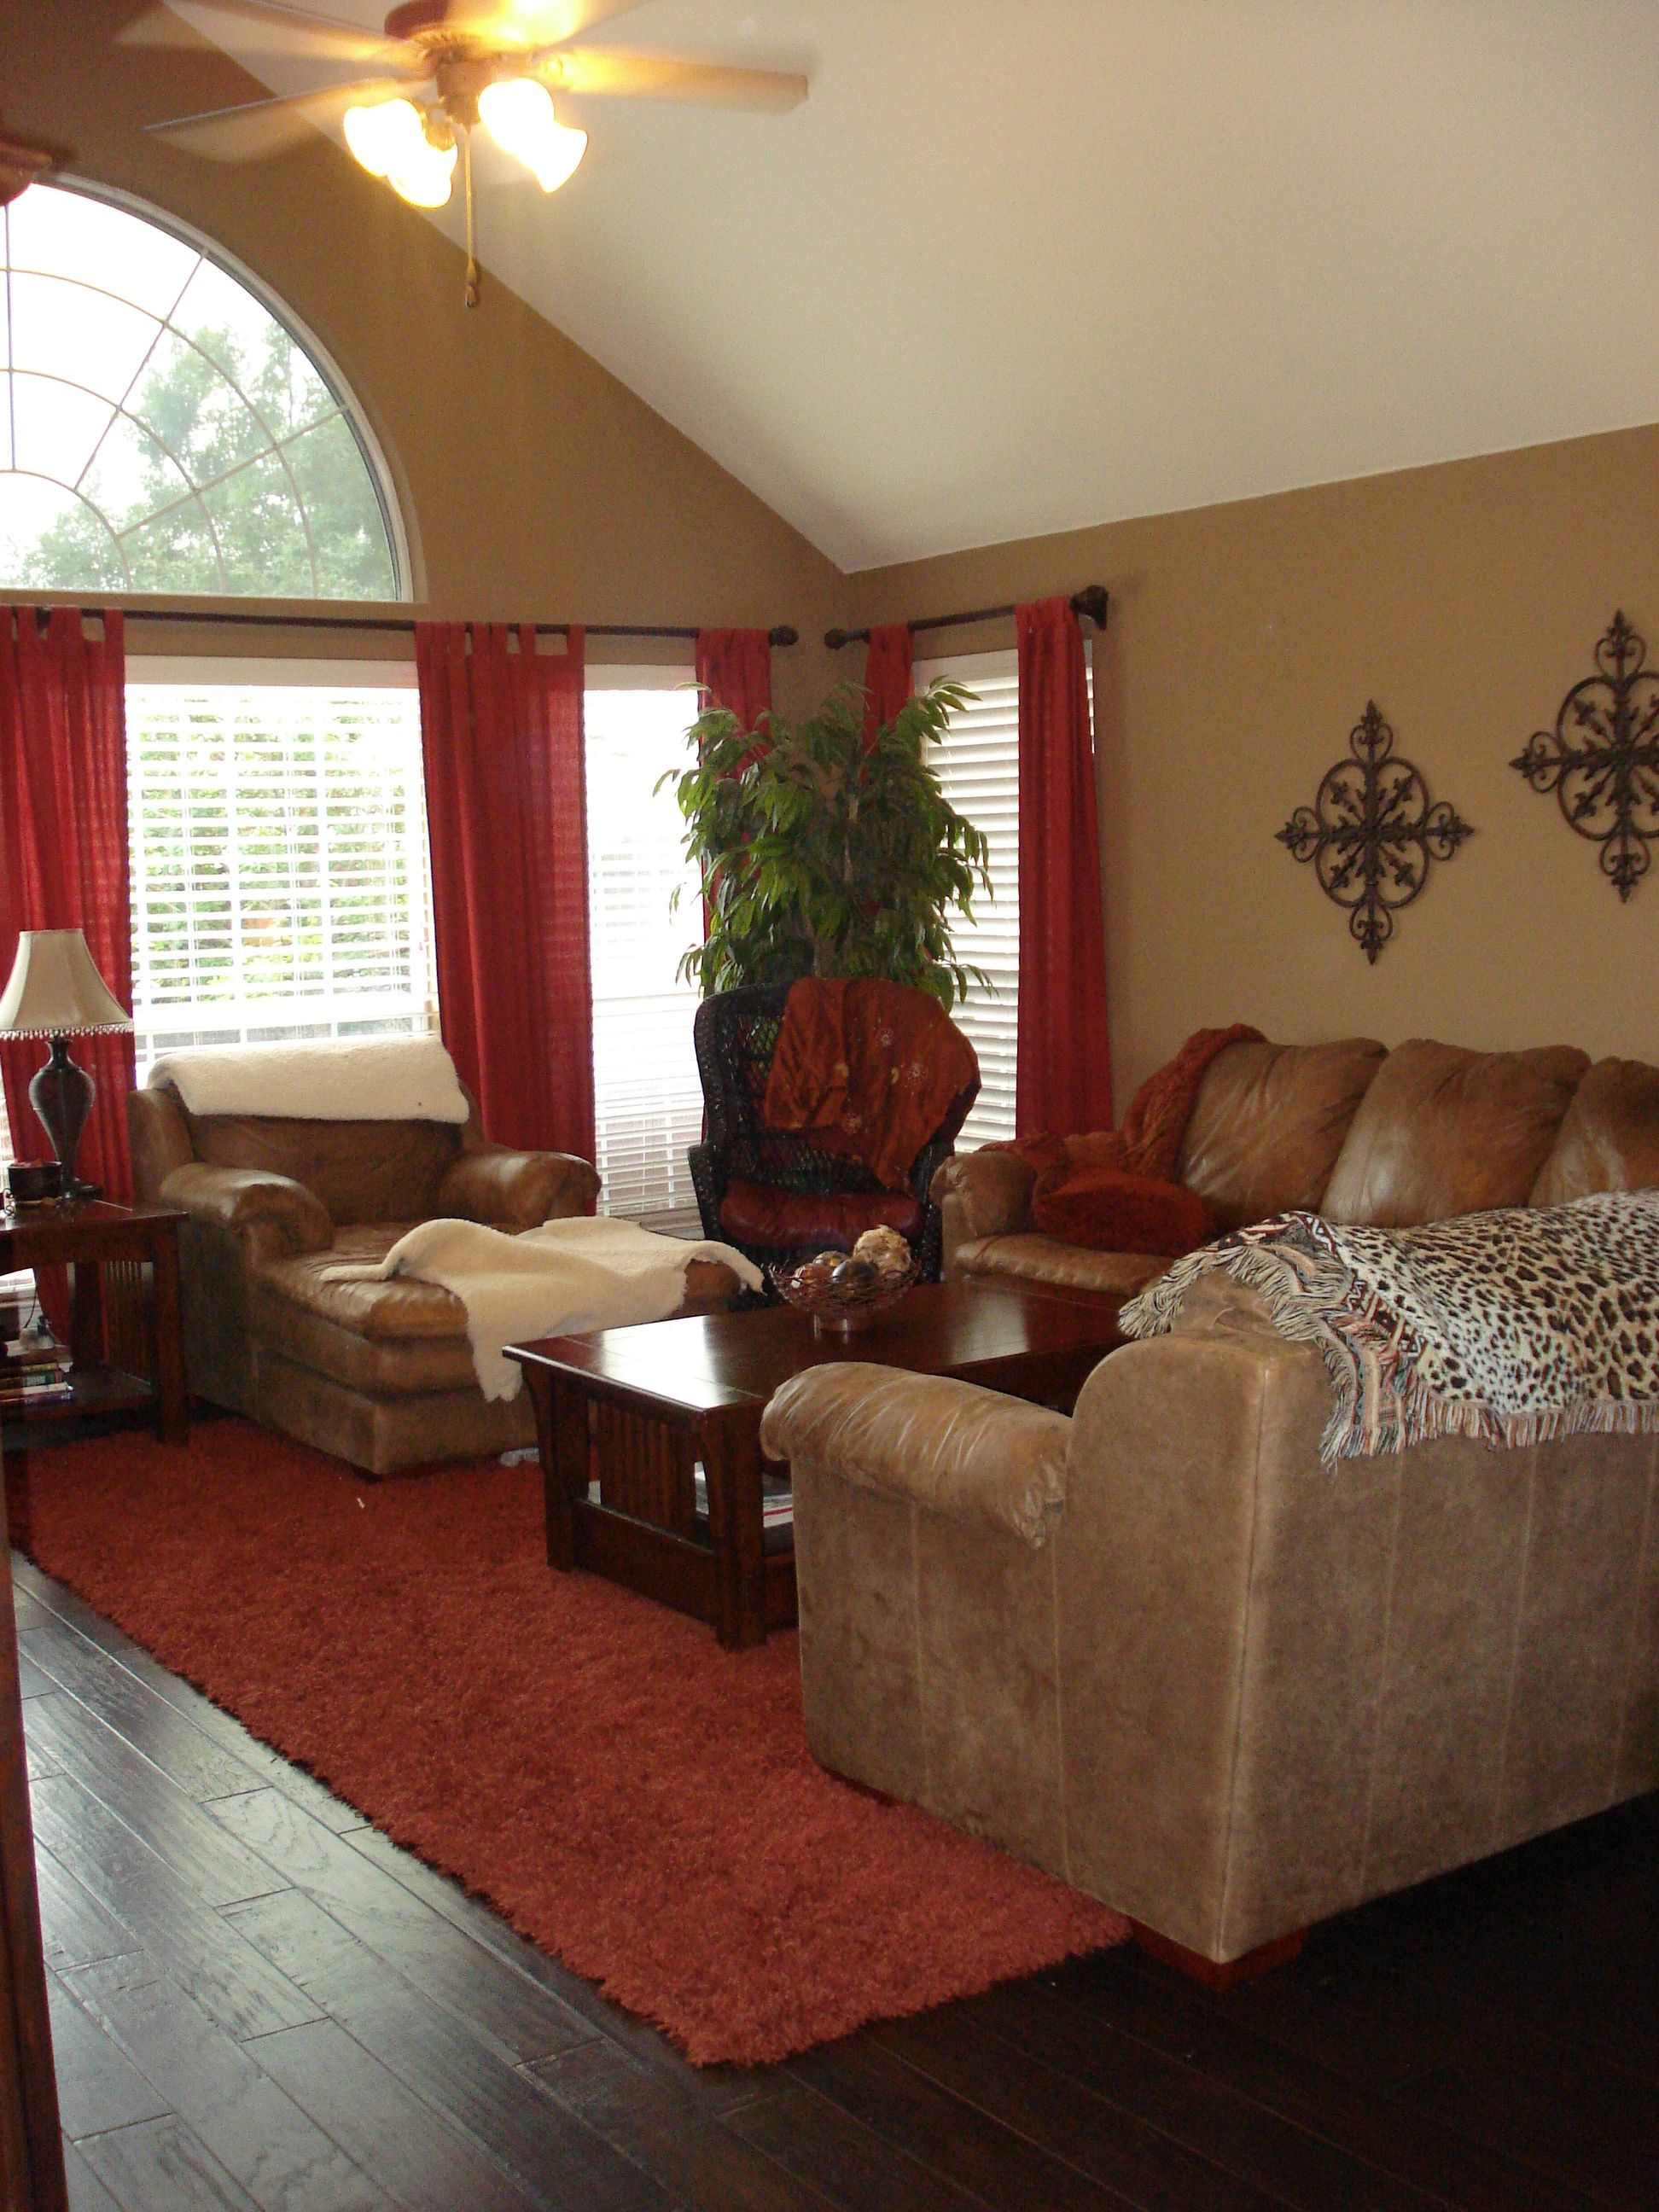 Warm family room red 39 s and browns for the home for What color curtains go with beige walls and dark furniture